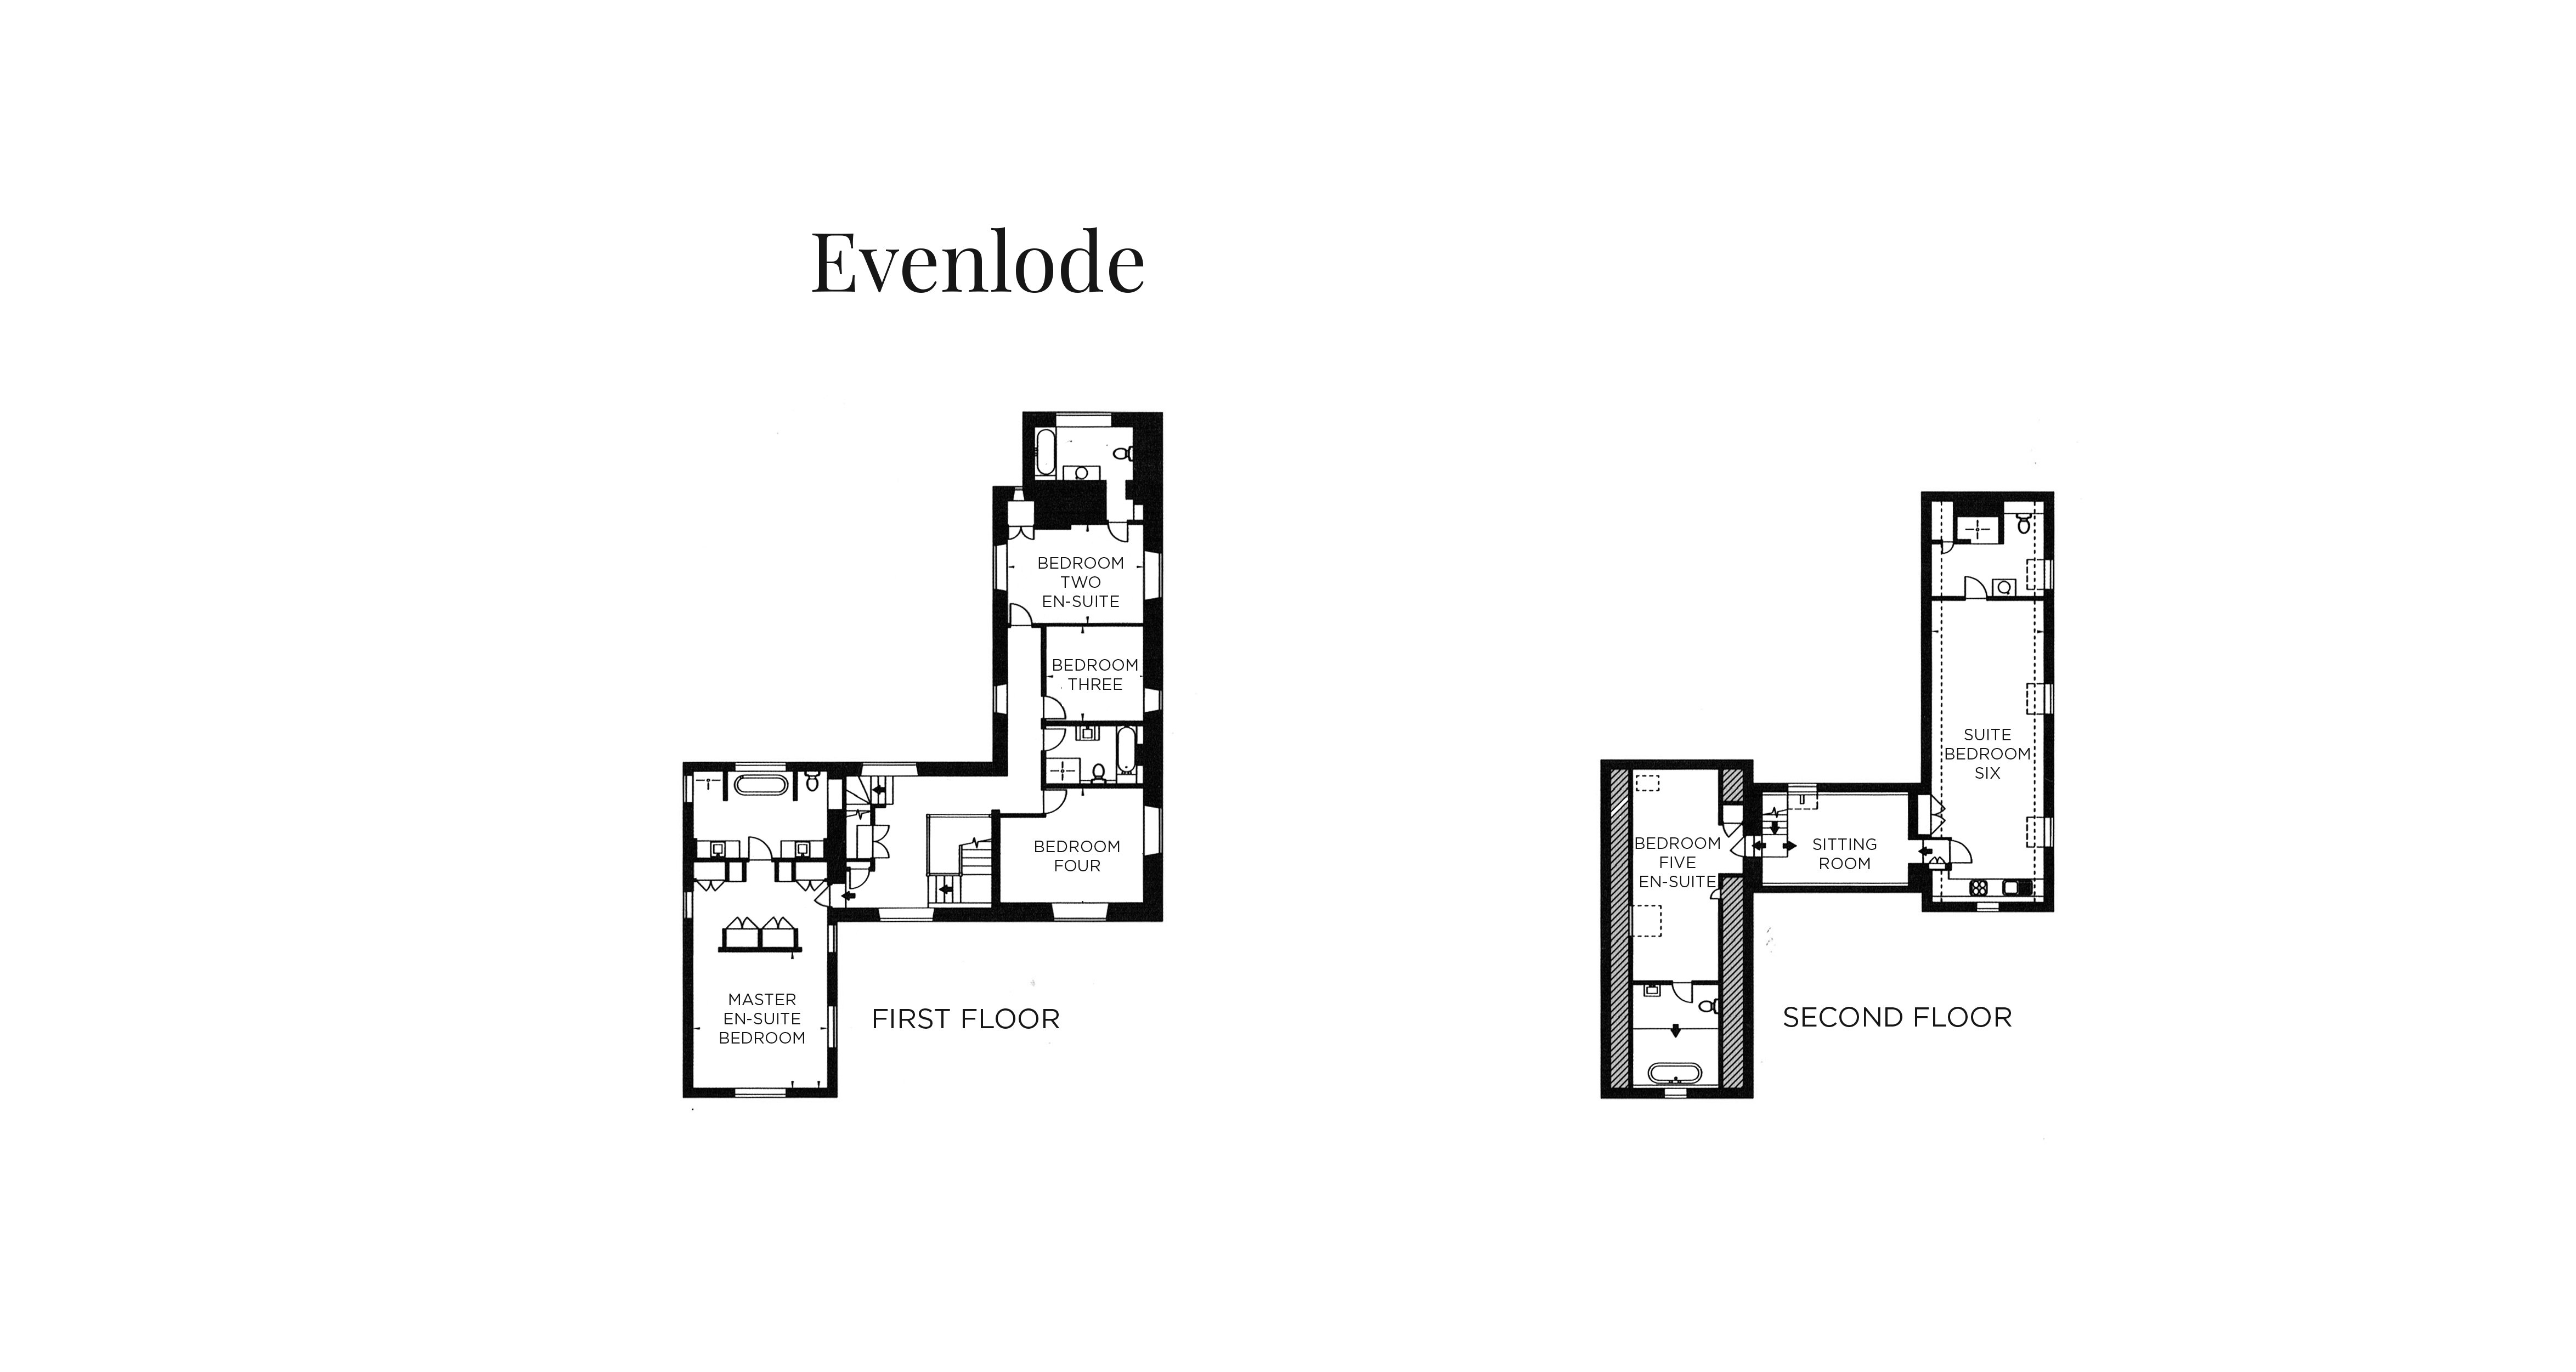 View the floorplan of Home Farm Evenlode